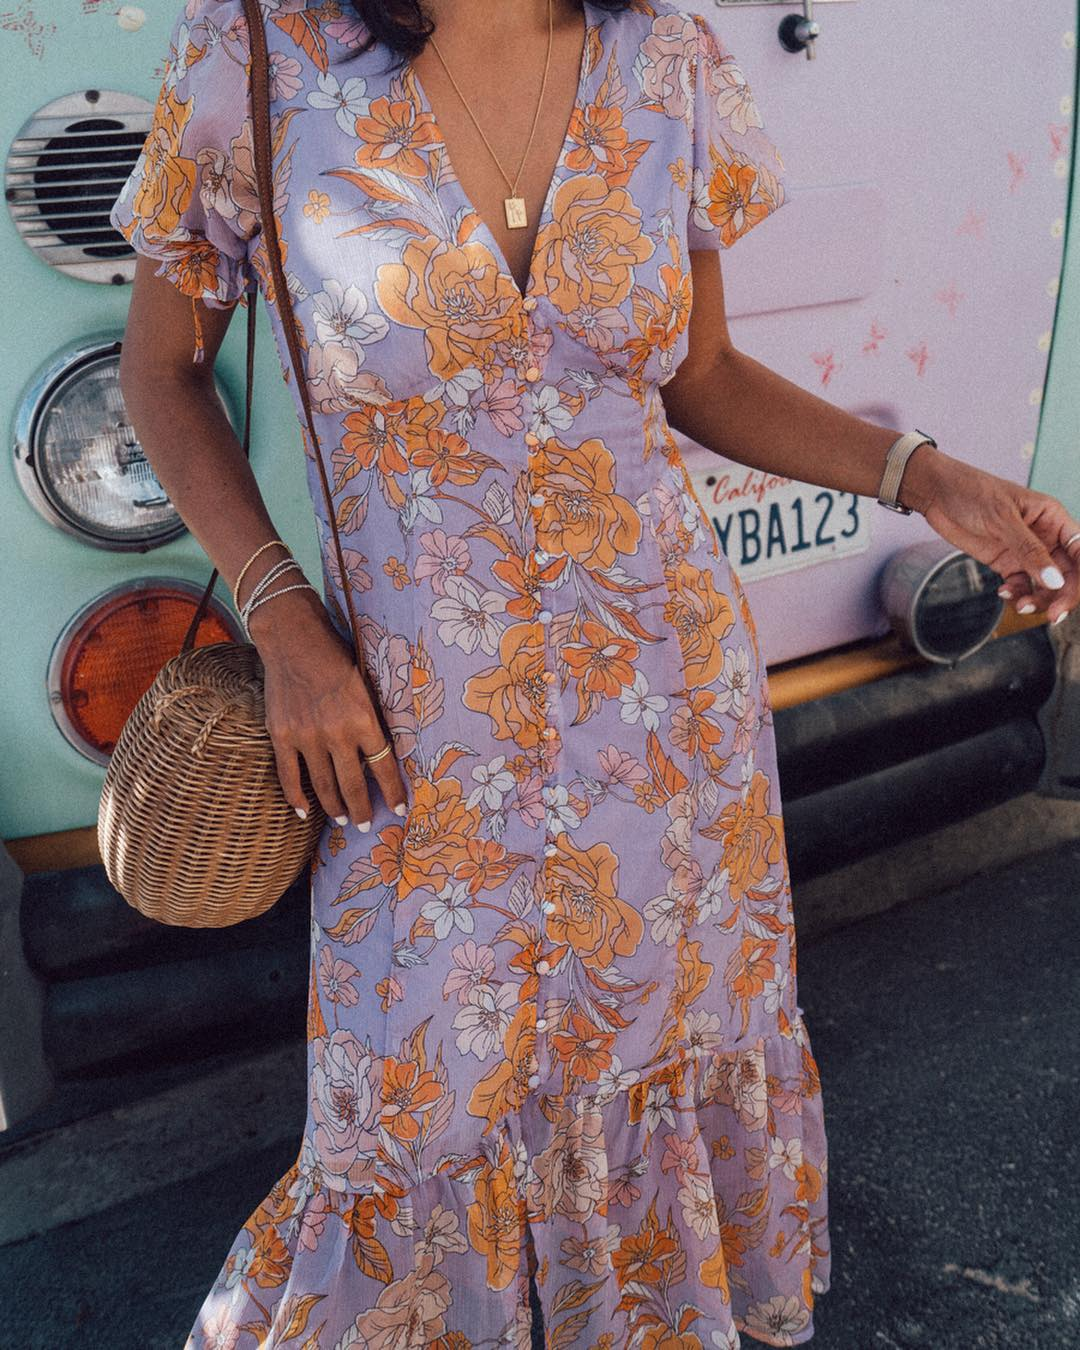 Dresses To Wear To A Beach Wedding The Complete Guide Lulus Com Fashion Blog,Knee Length Fall Wedding Guest Dresses With Sleeves